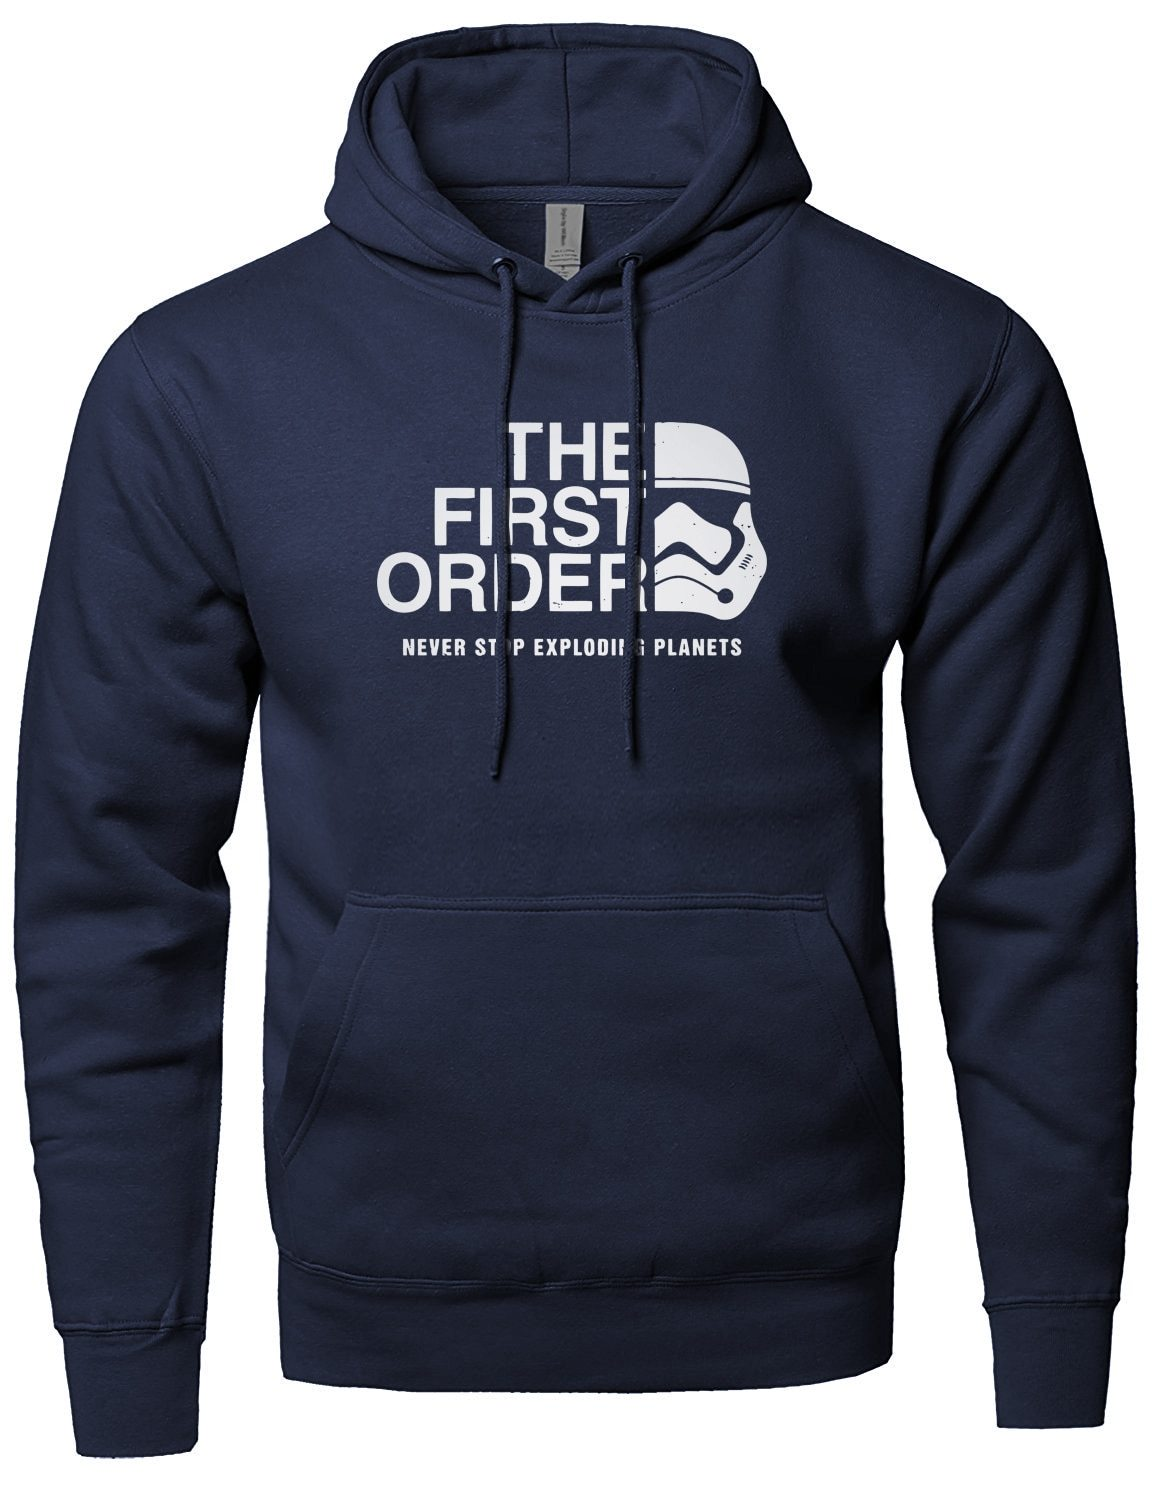 The First Order Print Hoodie Men 2018 Hot Fleece Sweatshirts Hip Hopdresslliy-dresslliy